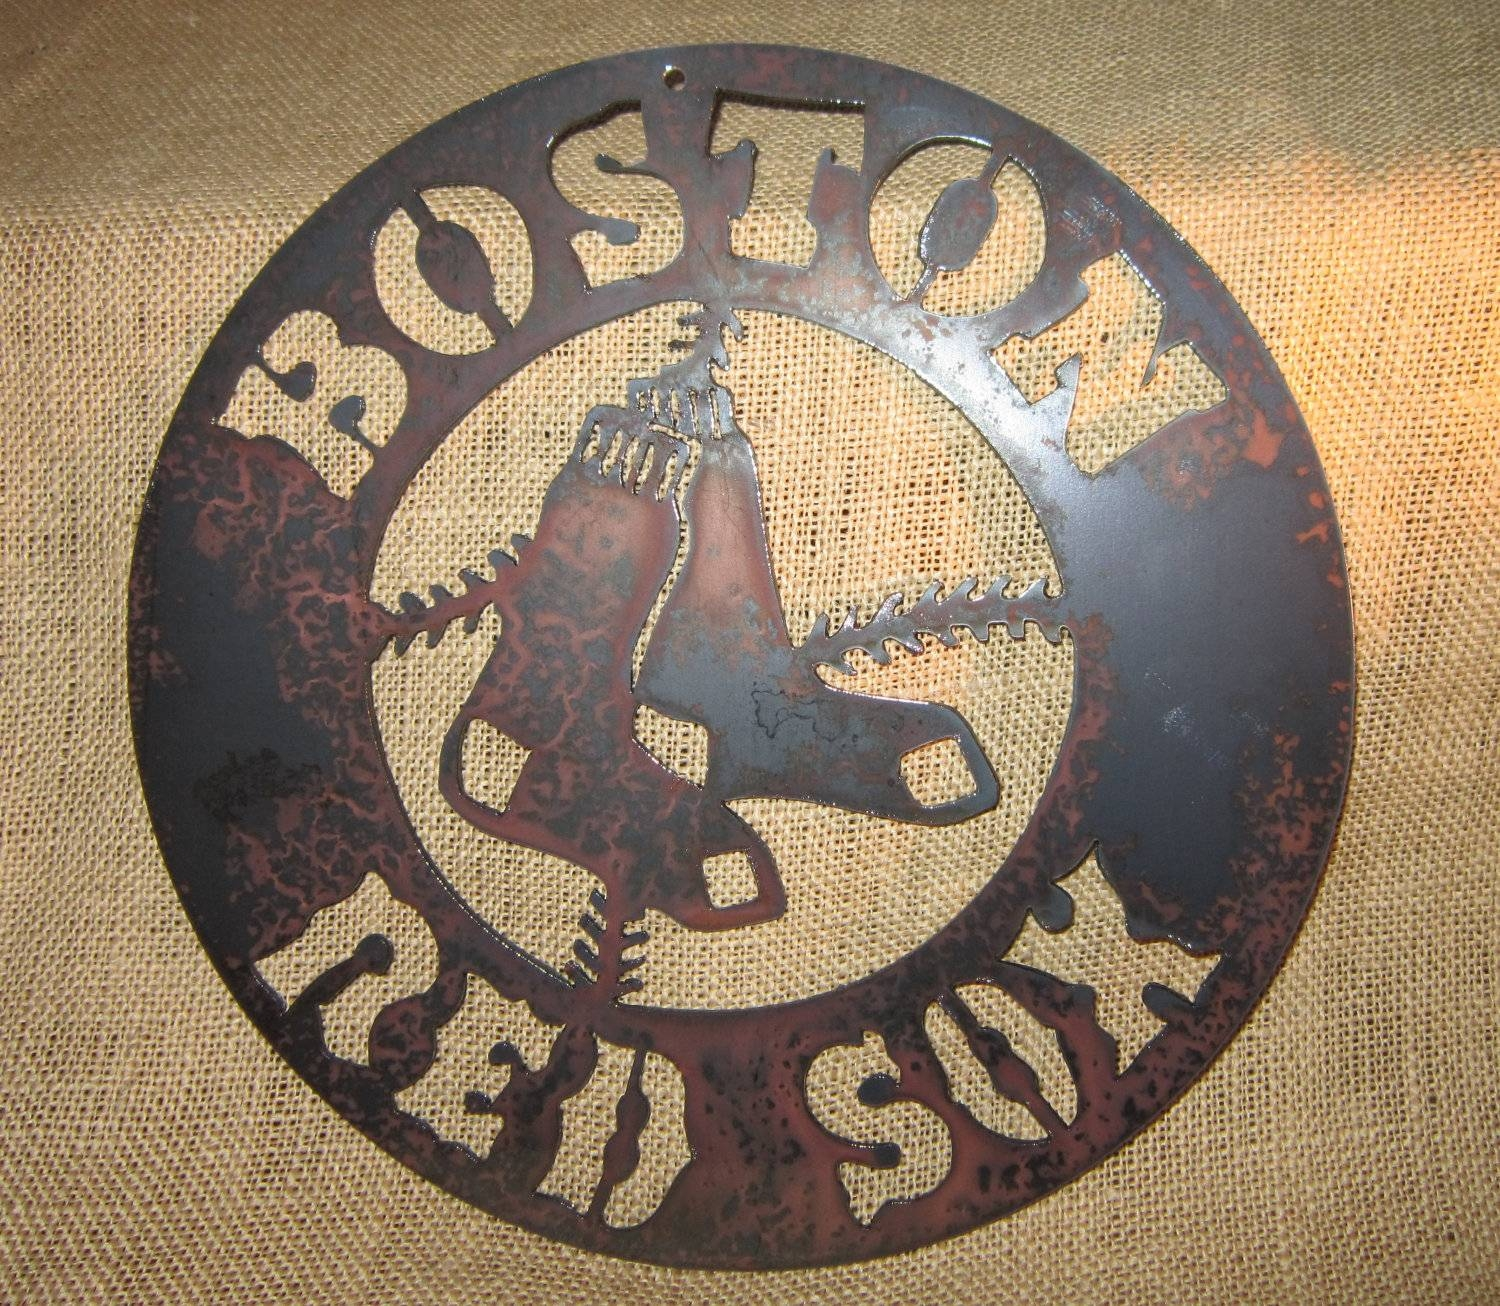 Boston Red Sox Metal Art Intended For Most Up To Date Red Sox Wall Decals (View 9 of 30)